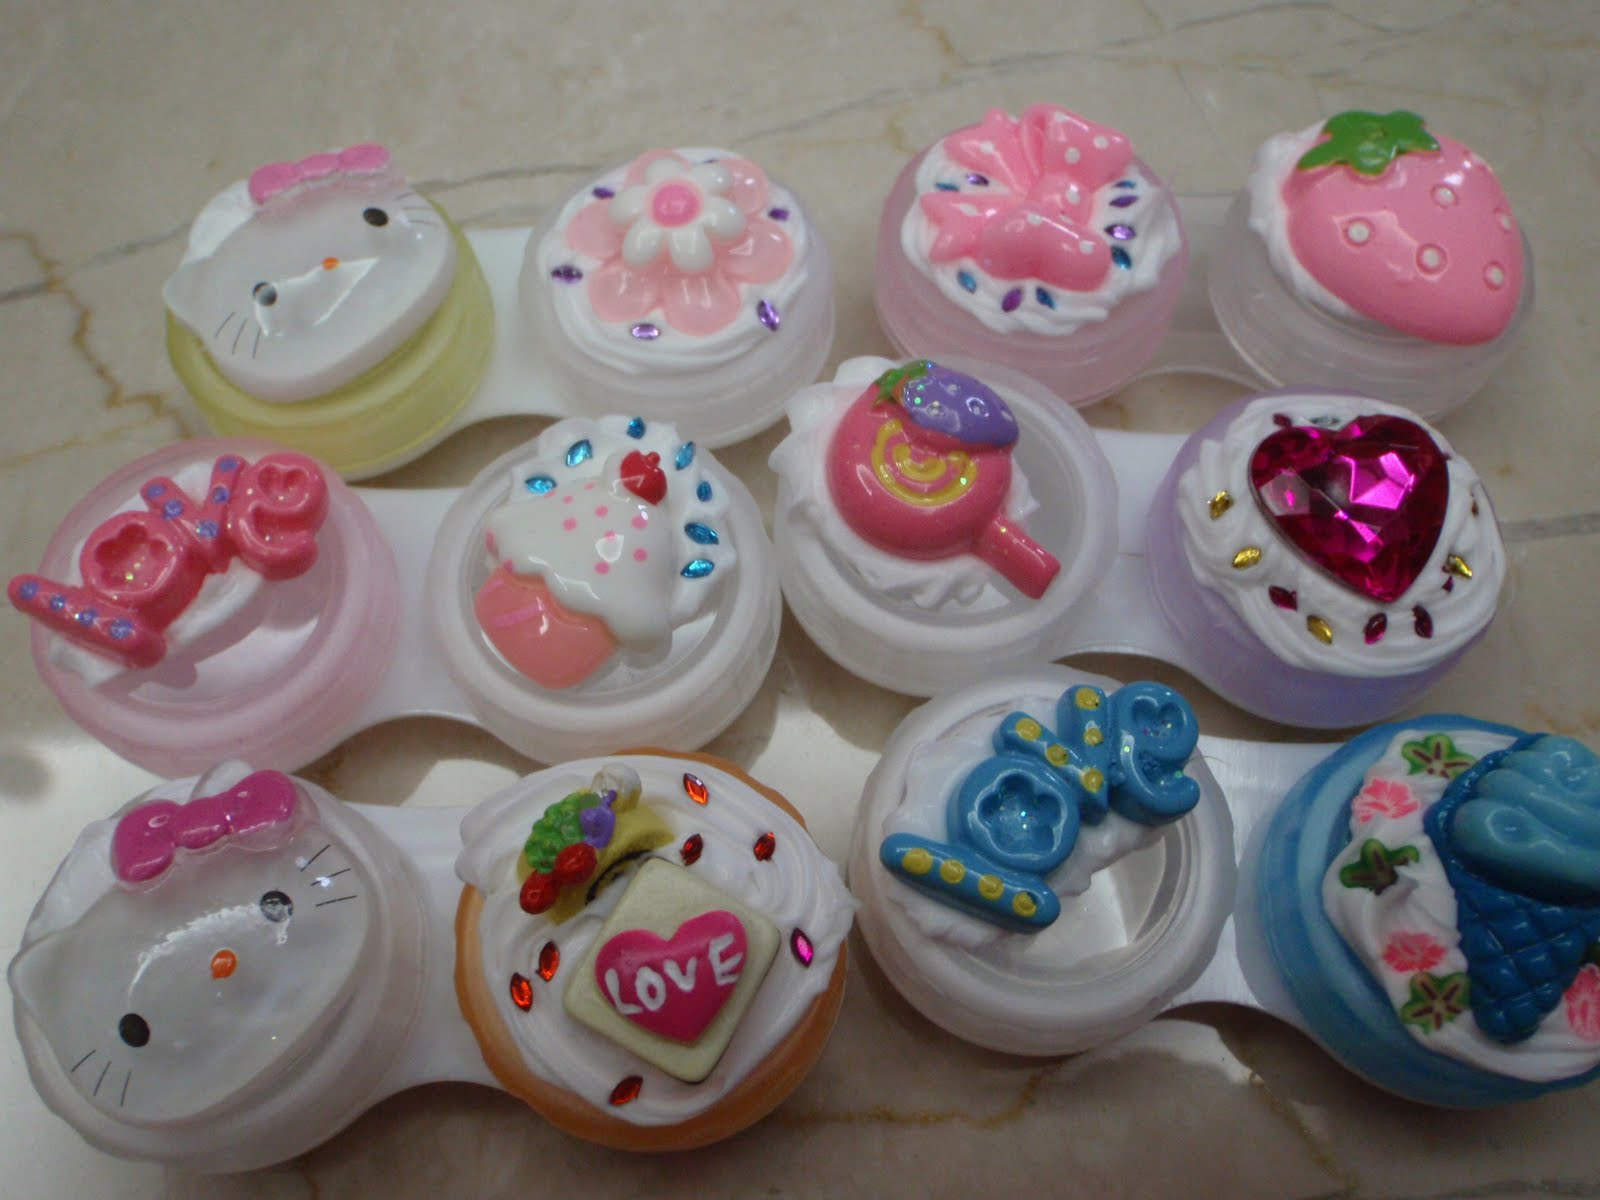 Contact+lens+case+cute